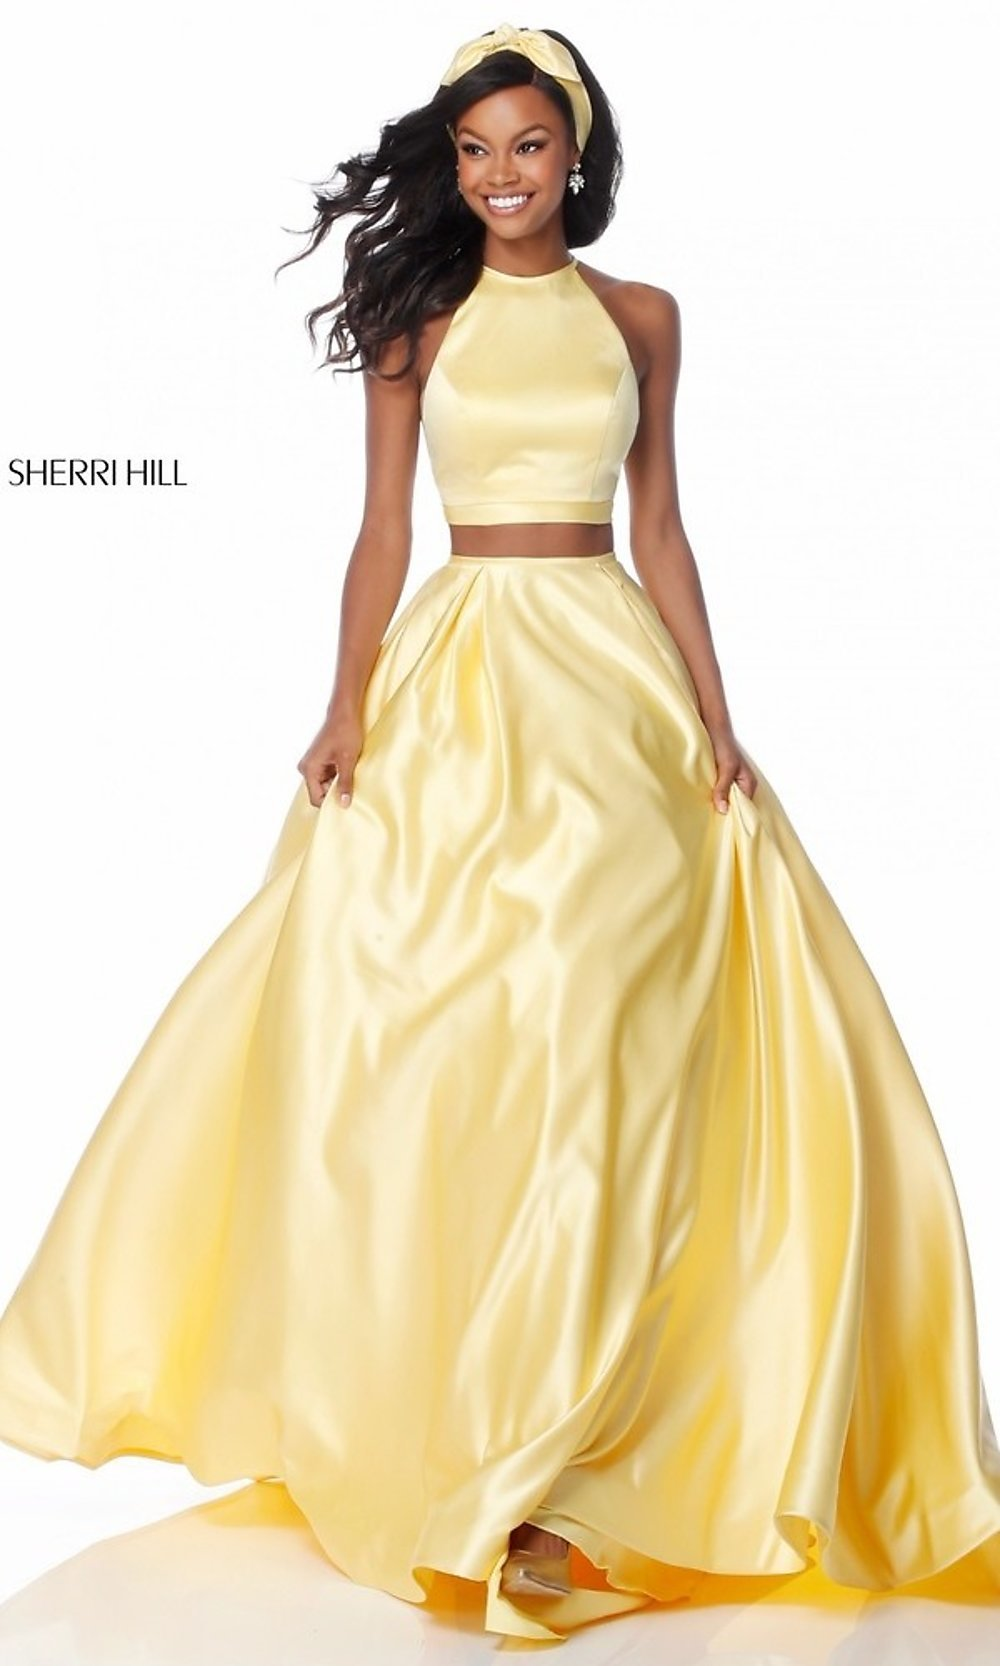 Sherri Hill Two Piece Prom Dress With Pockets Promgirl